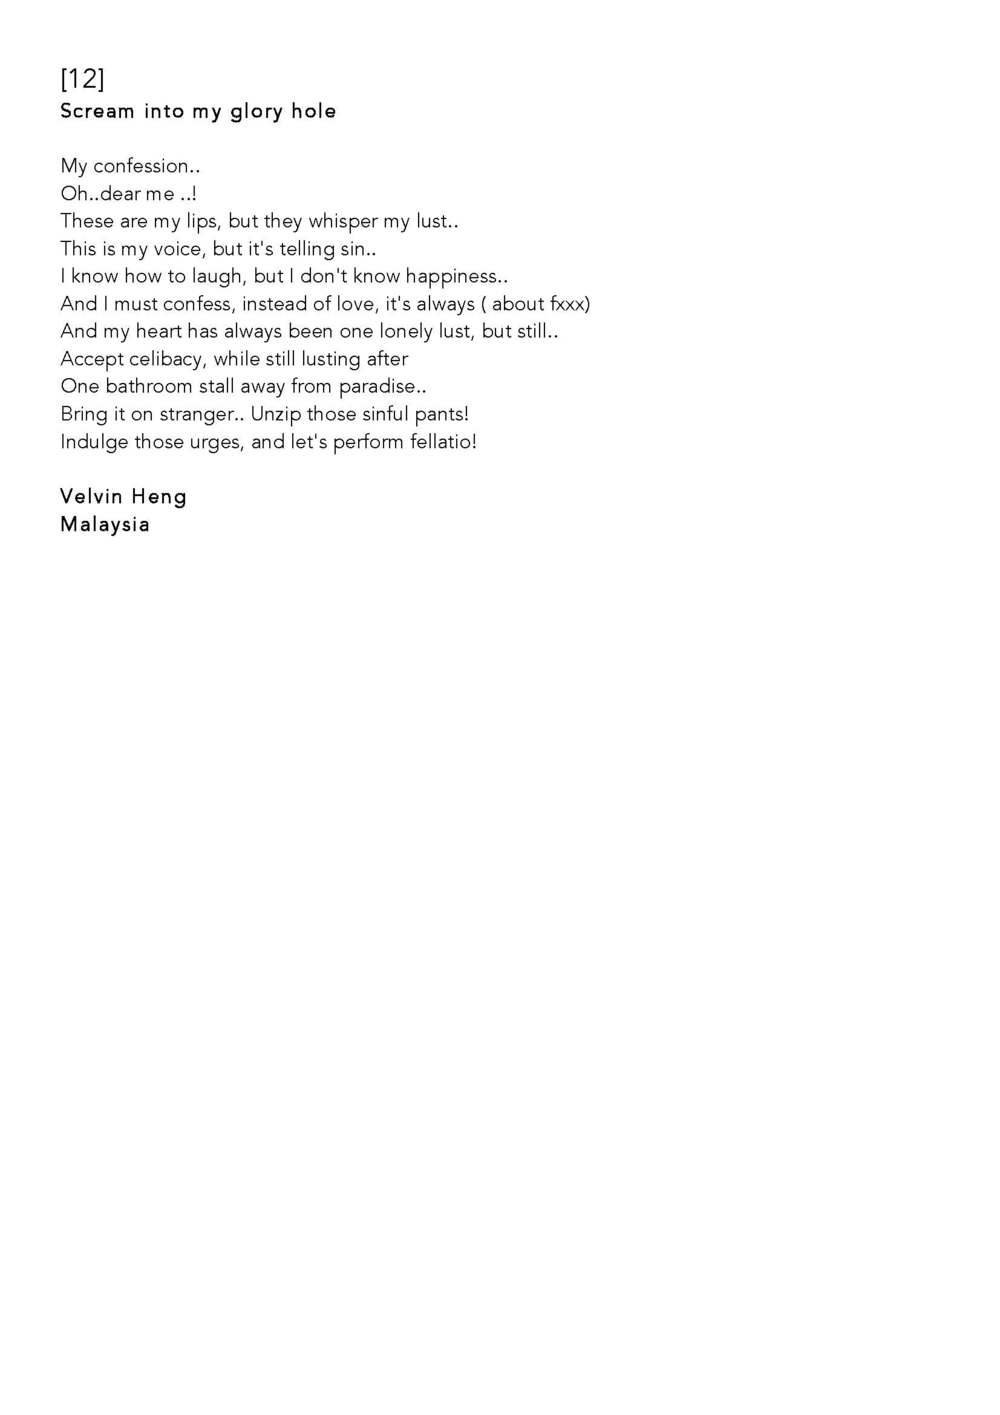 Poetry Collection - Everyone can Poetry _ For 12 May 2014 - R2_Page_12.jpg